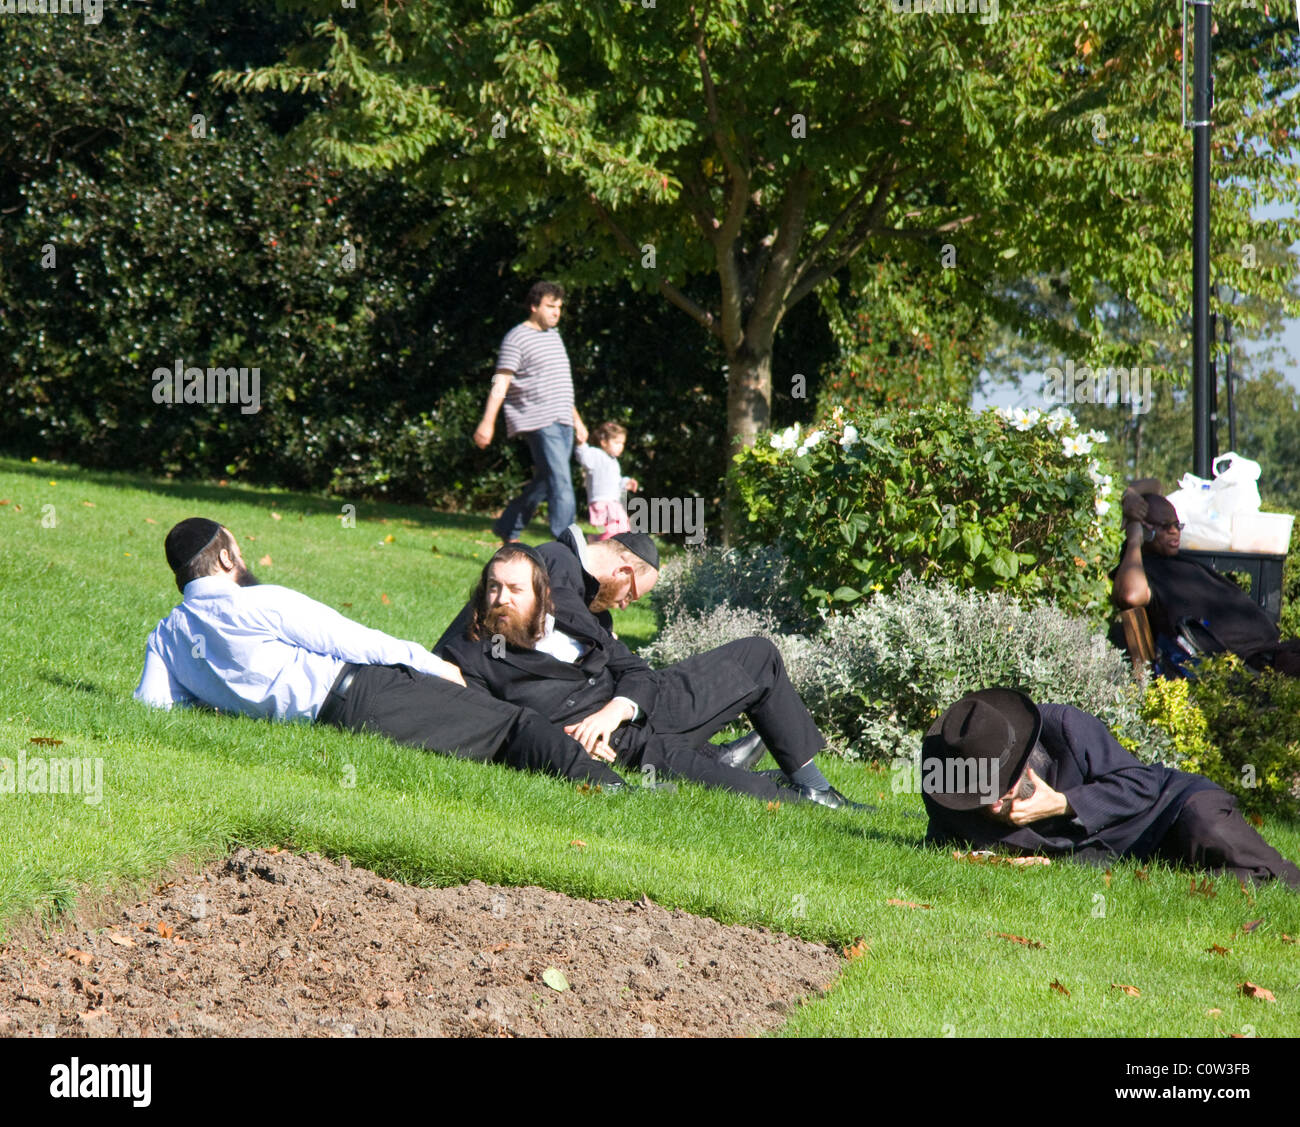 Orthodox Jews relaxing on a sunny  day in the park - Stock Image